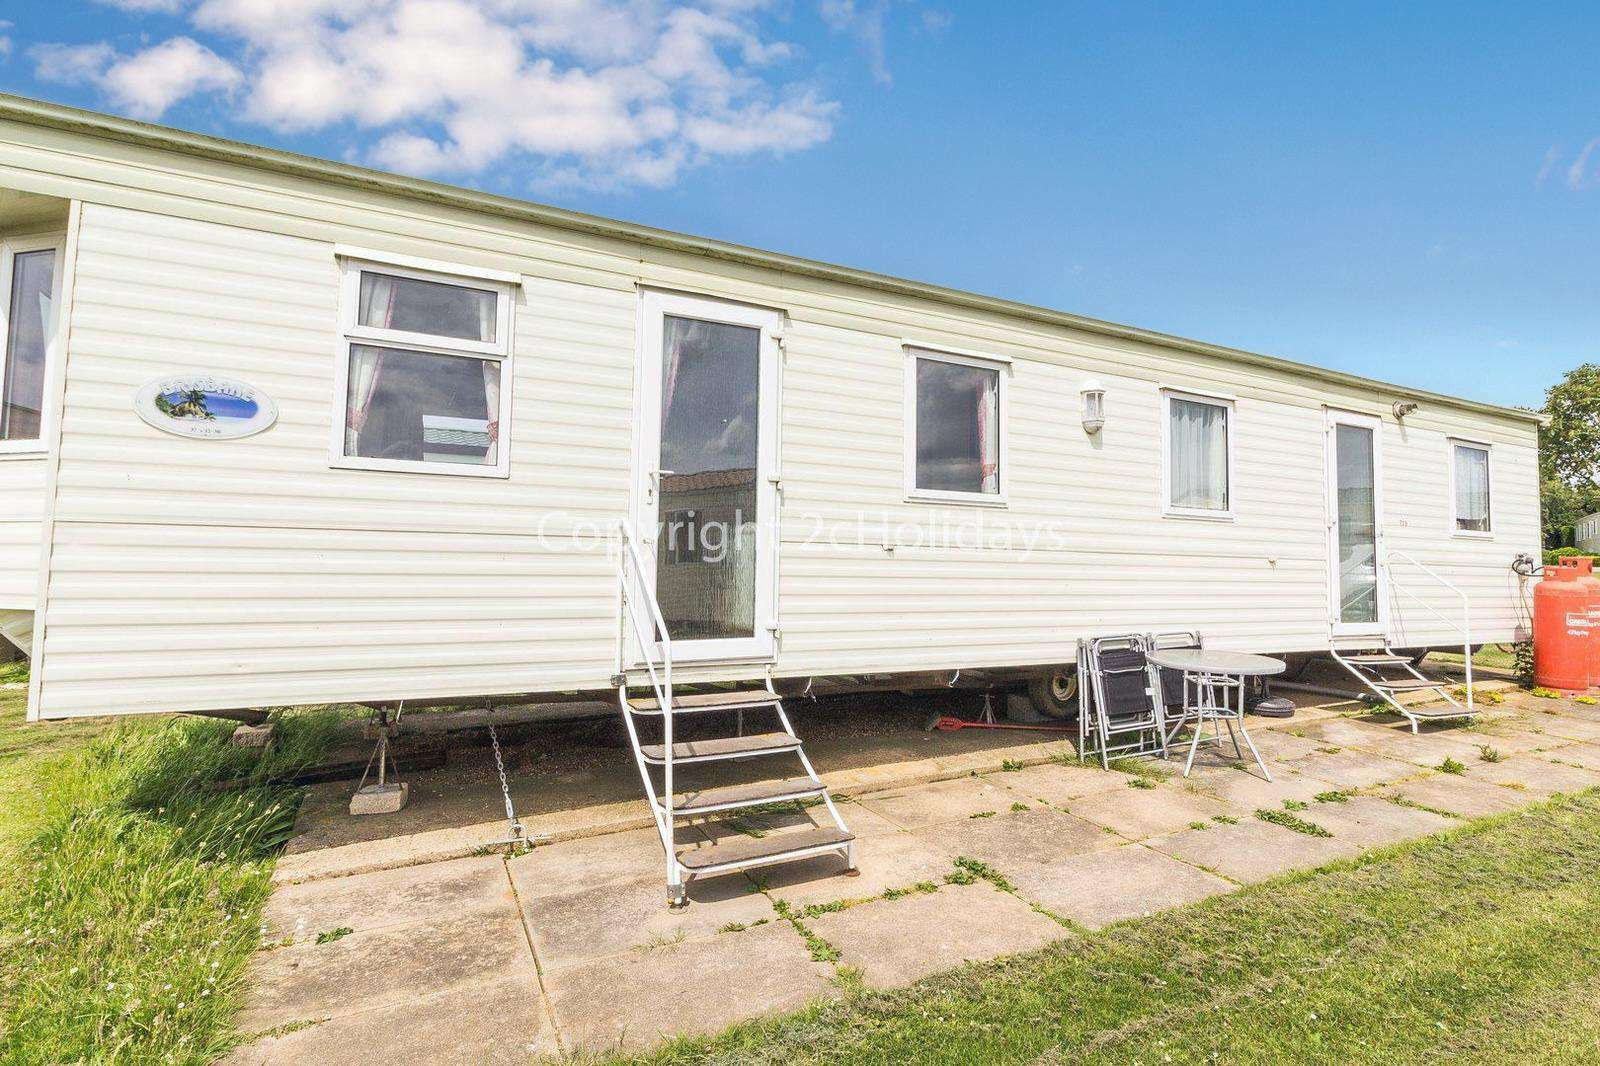 So many families have enjoyed a great break Manor Park Holiday Park - property